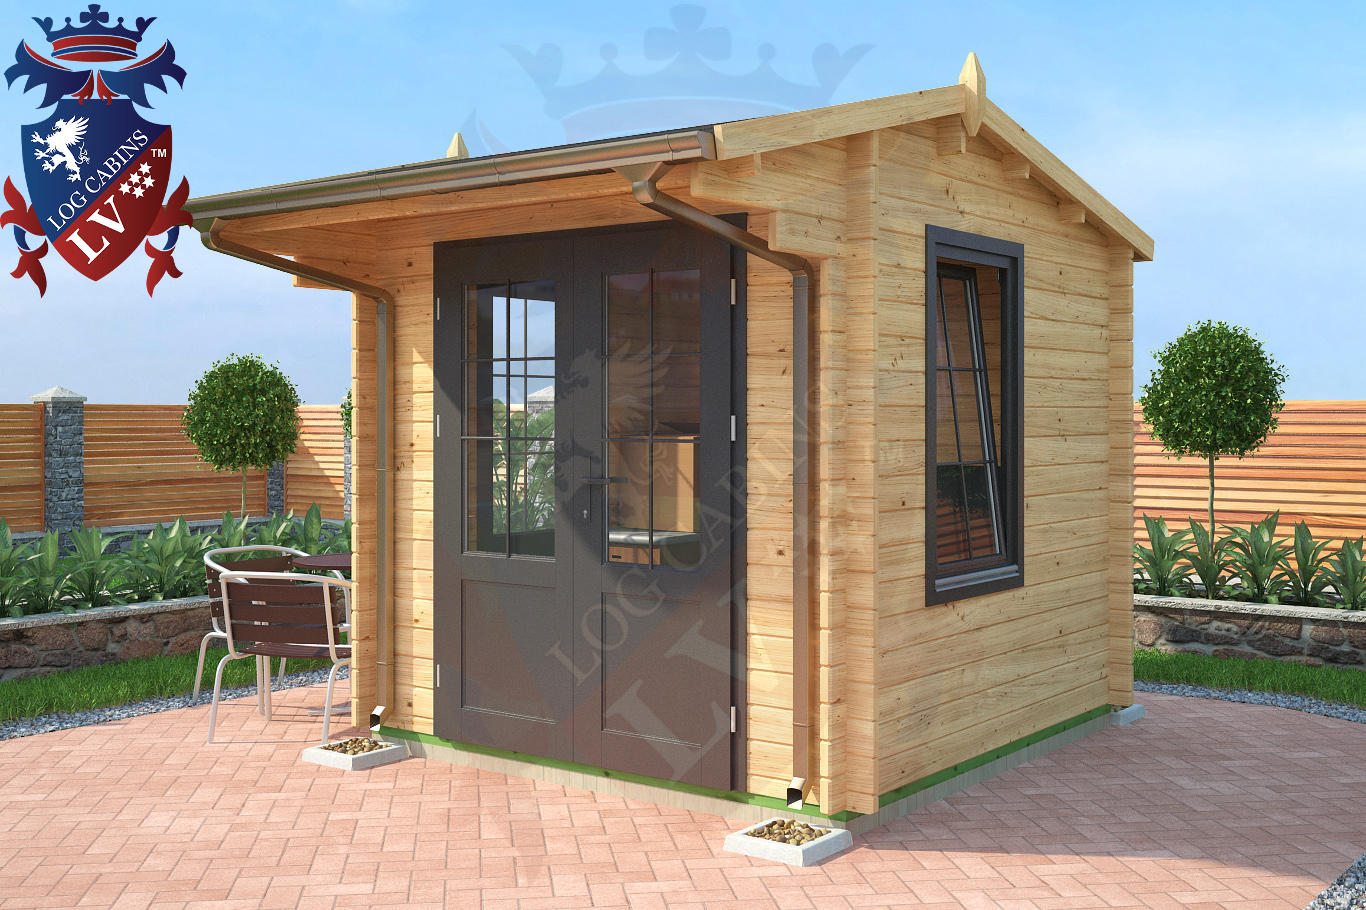 New Deluxe Standard DF Log Cabins Range for 2016